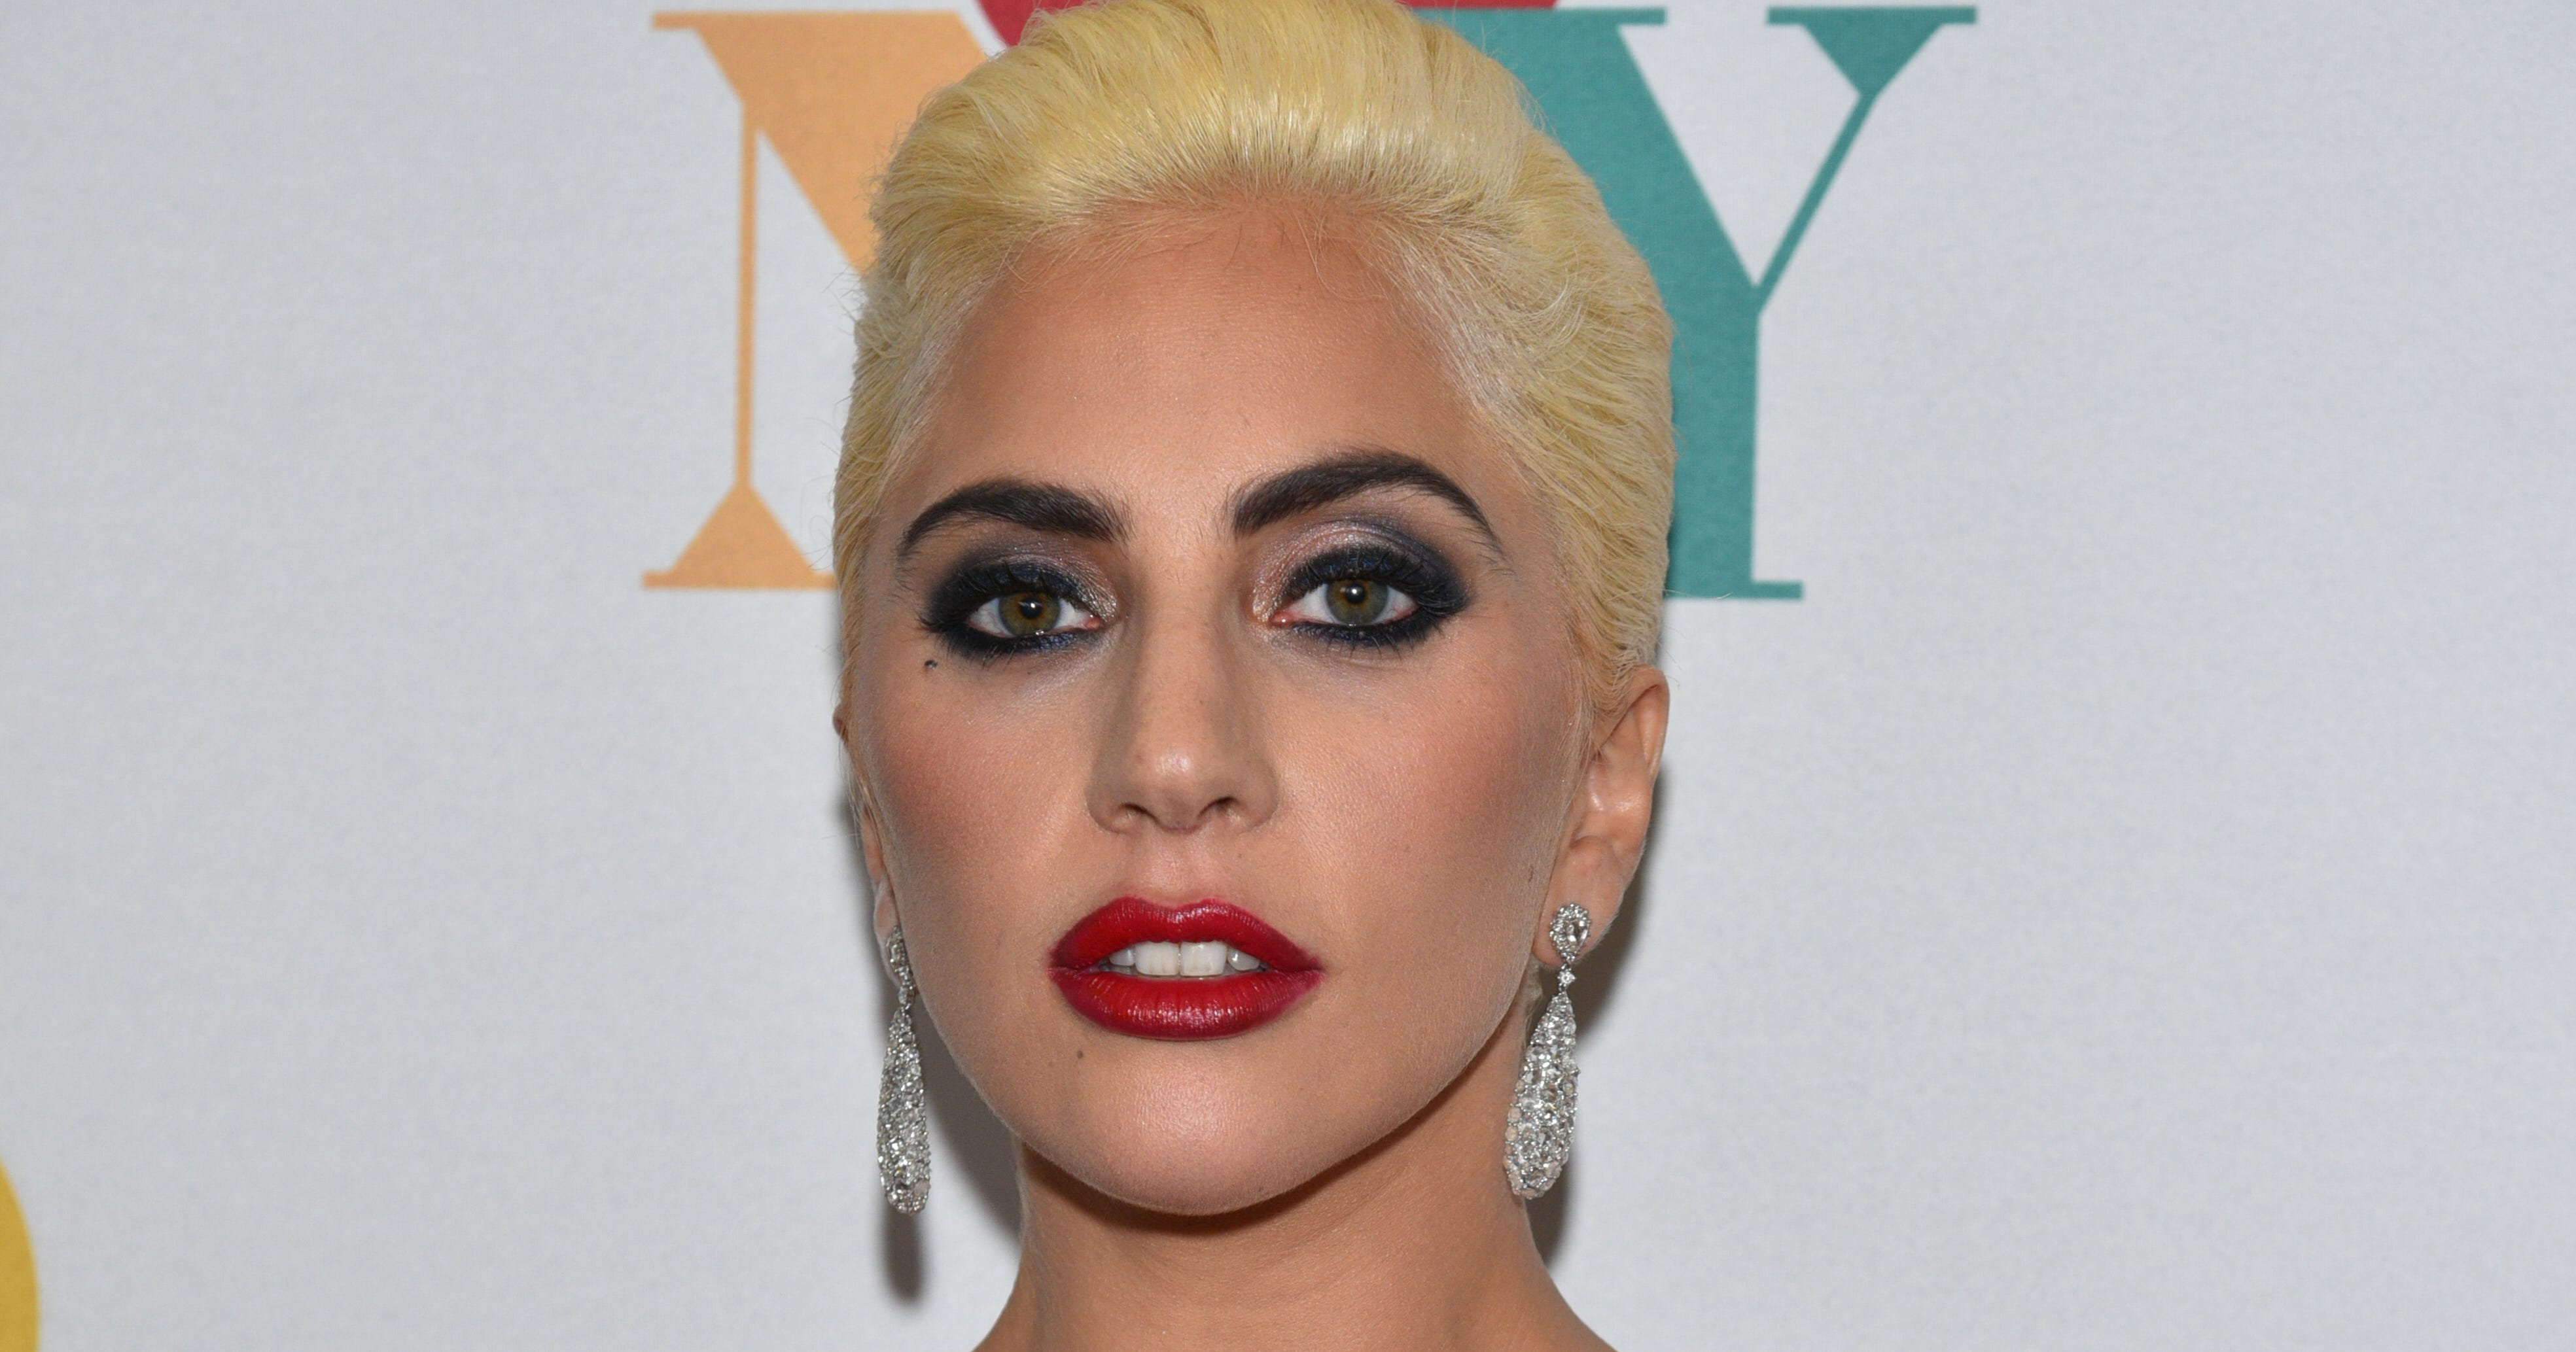 Lady Gaga Stepped Out Of The Spotlight For Her Mental Health